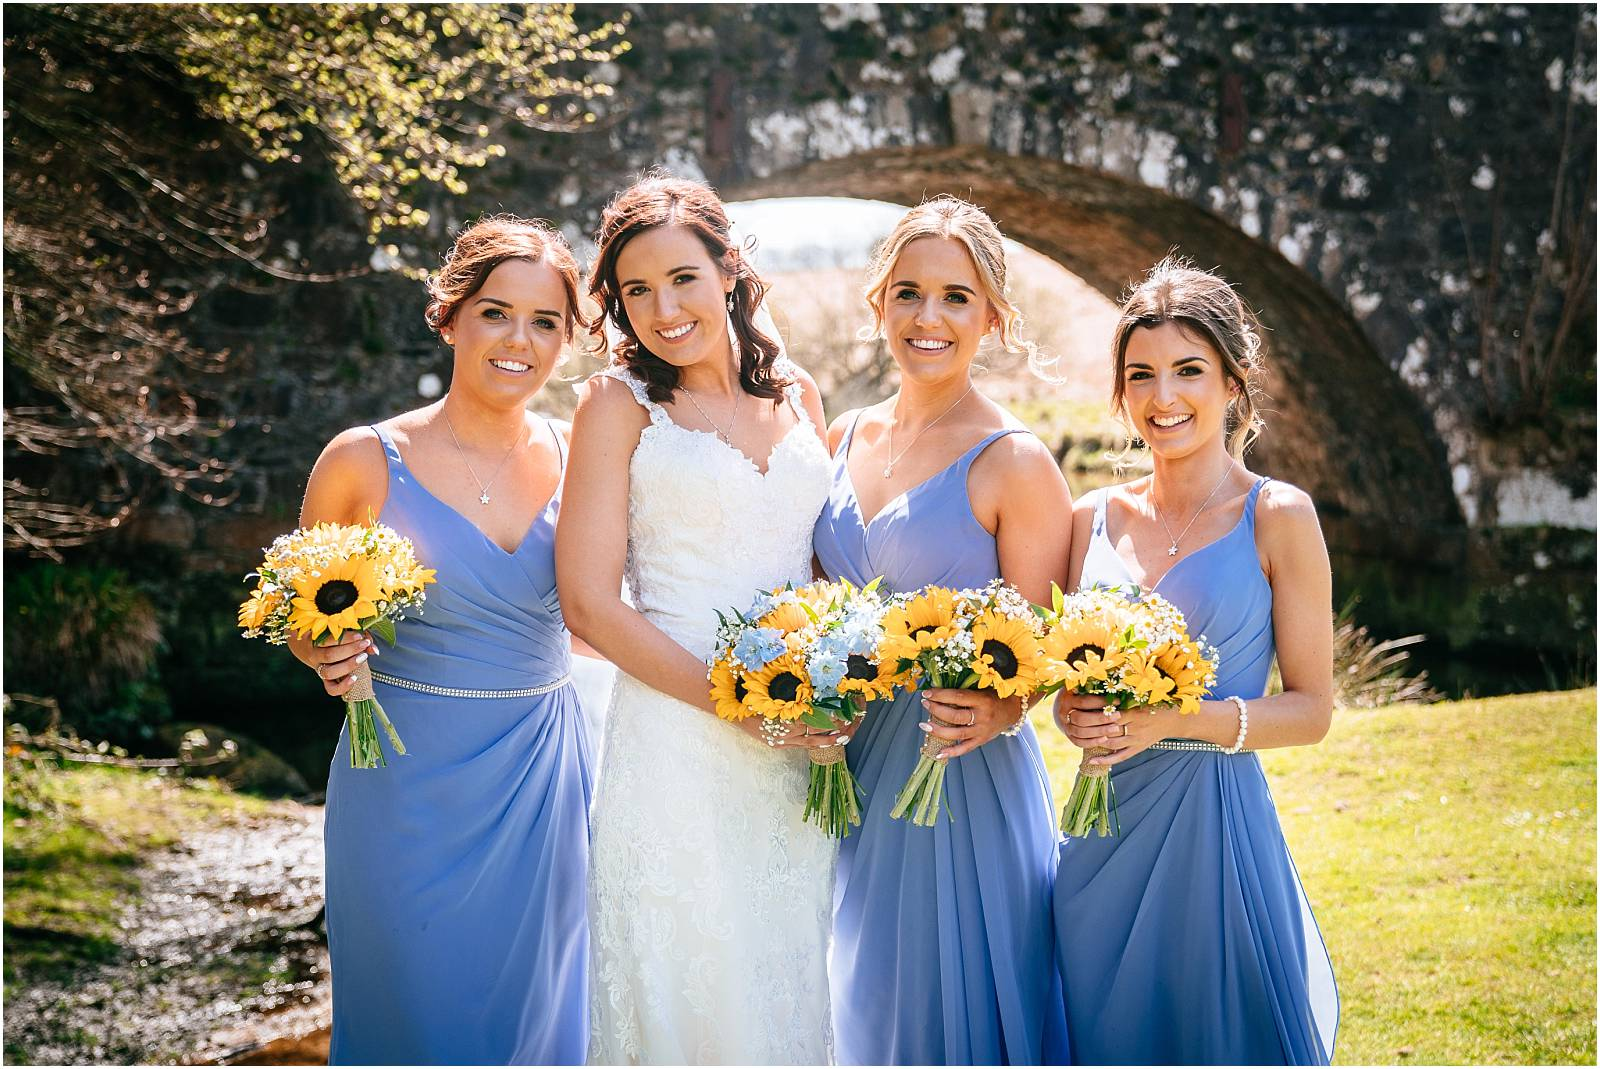 bridesmaids with sunflower bouquets at wedding